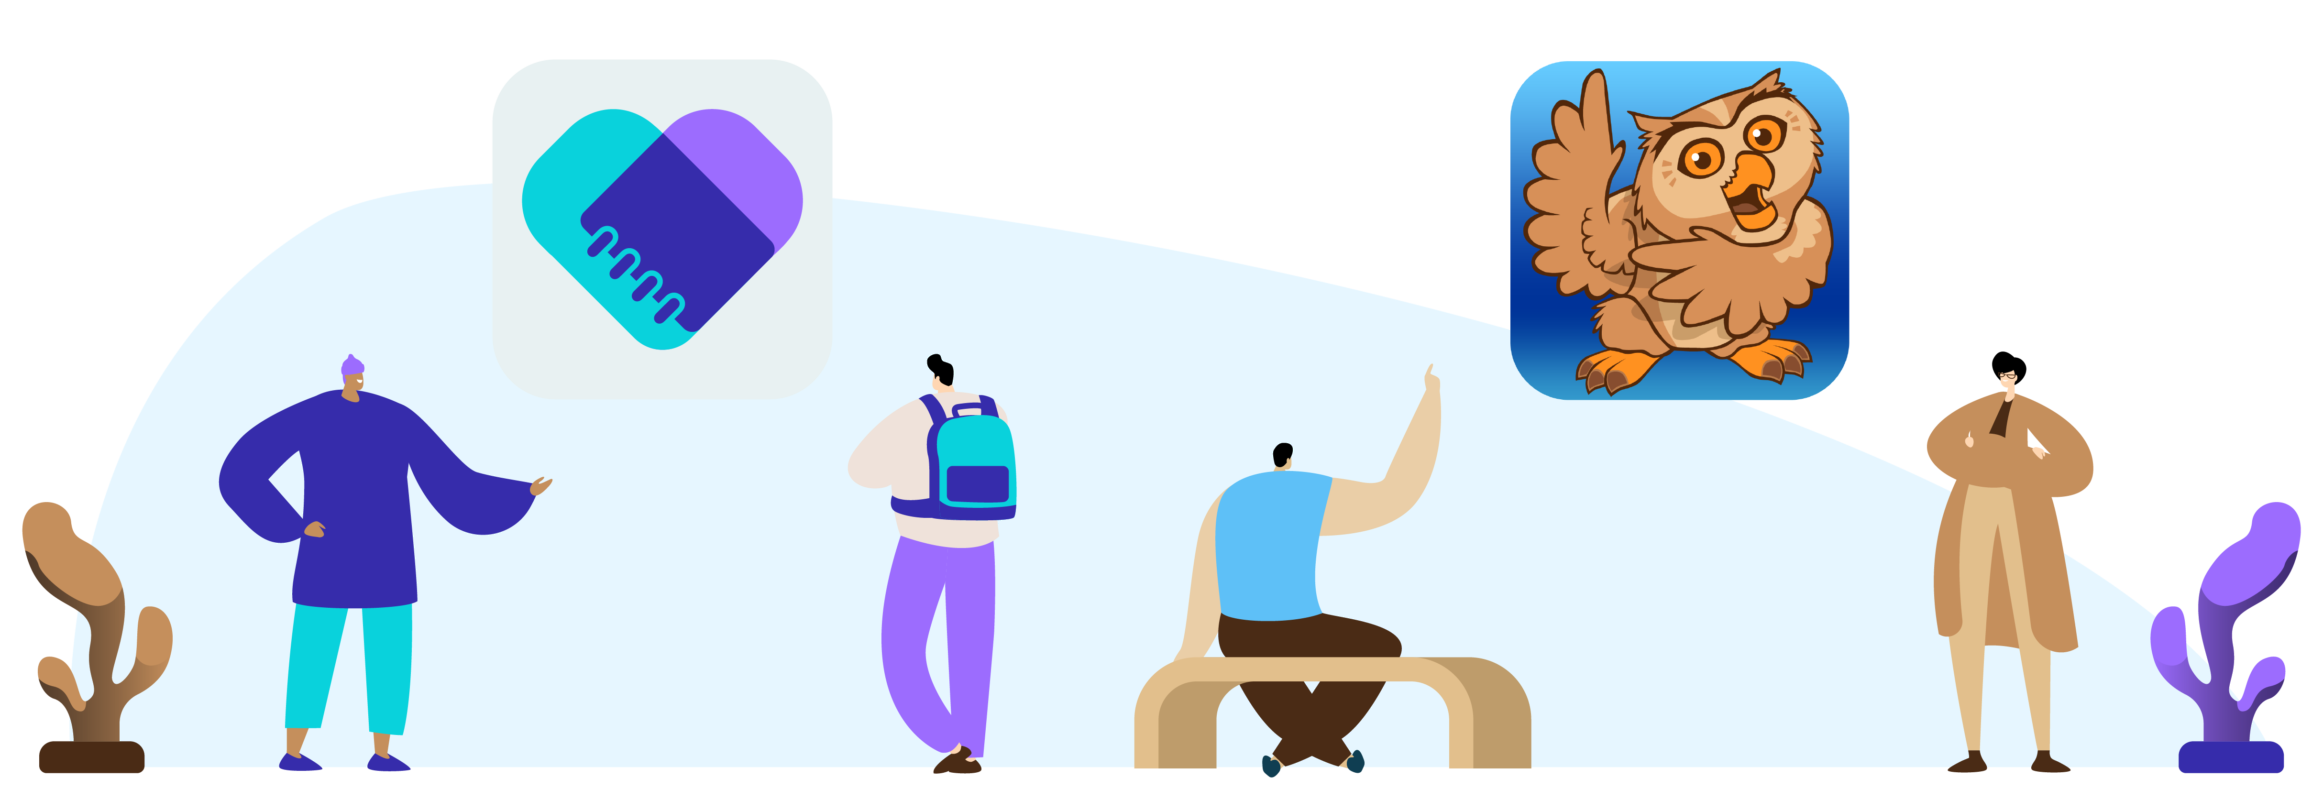 Illustration of Proloquo2Go and simPODD icons in the air and people looking at both